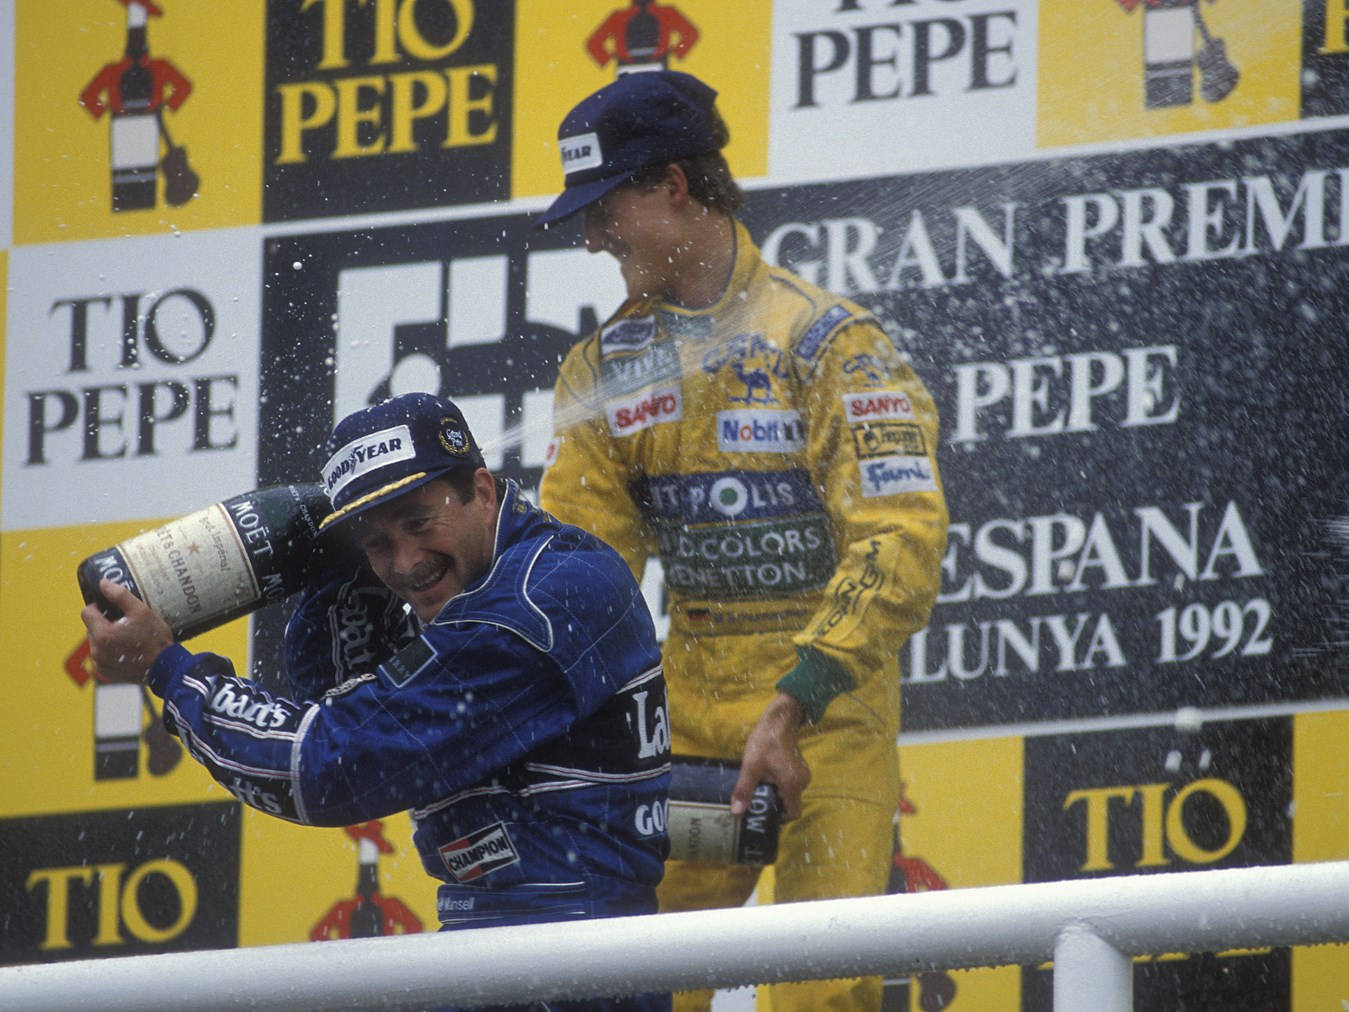 Michael Schumacher and Nigel Mansell celebrate atop the podium after the 1992 Spanish Grand Prix.